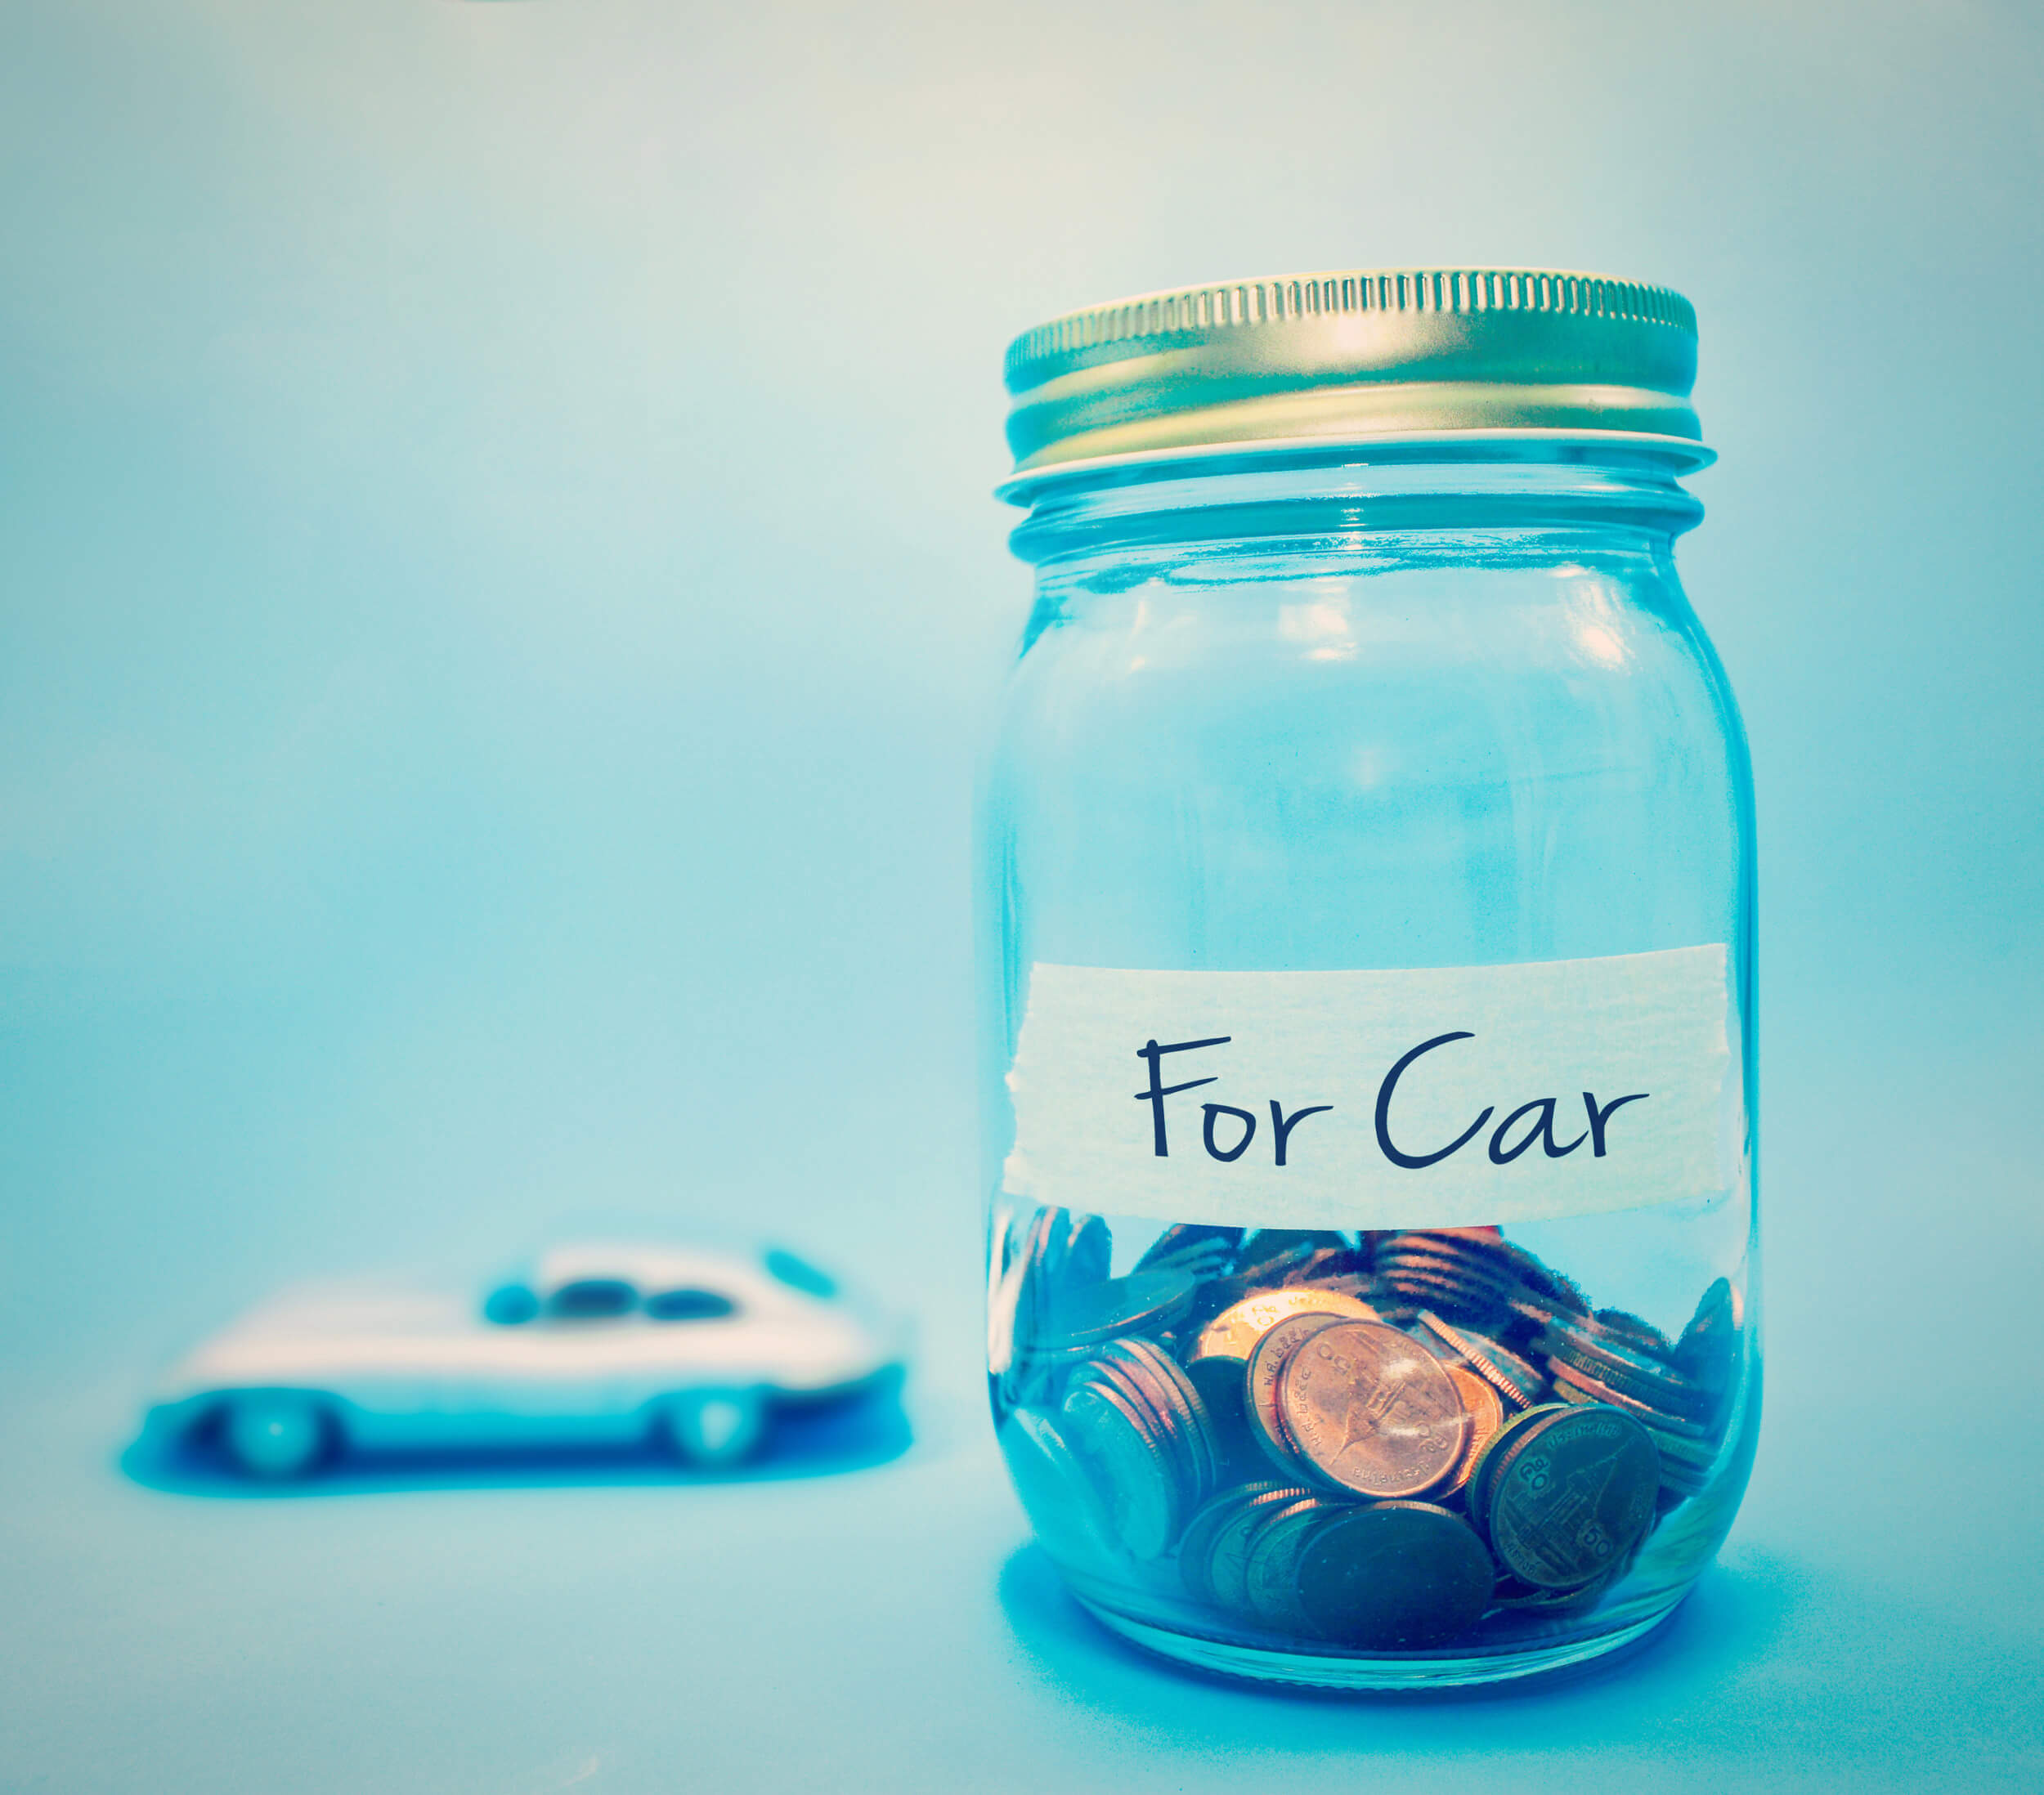 Toy car and large money saving jar to represent car running costs with light blue background